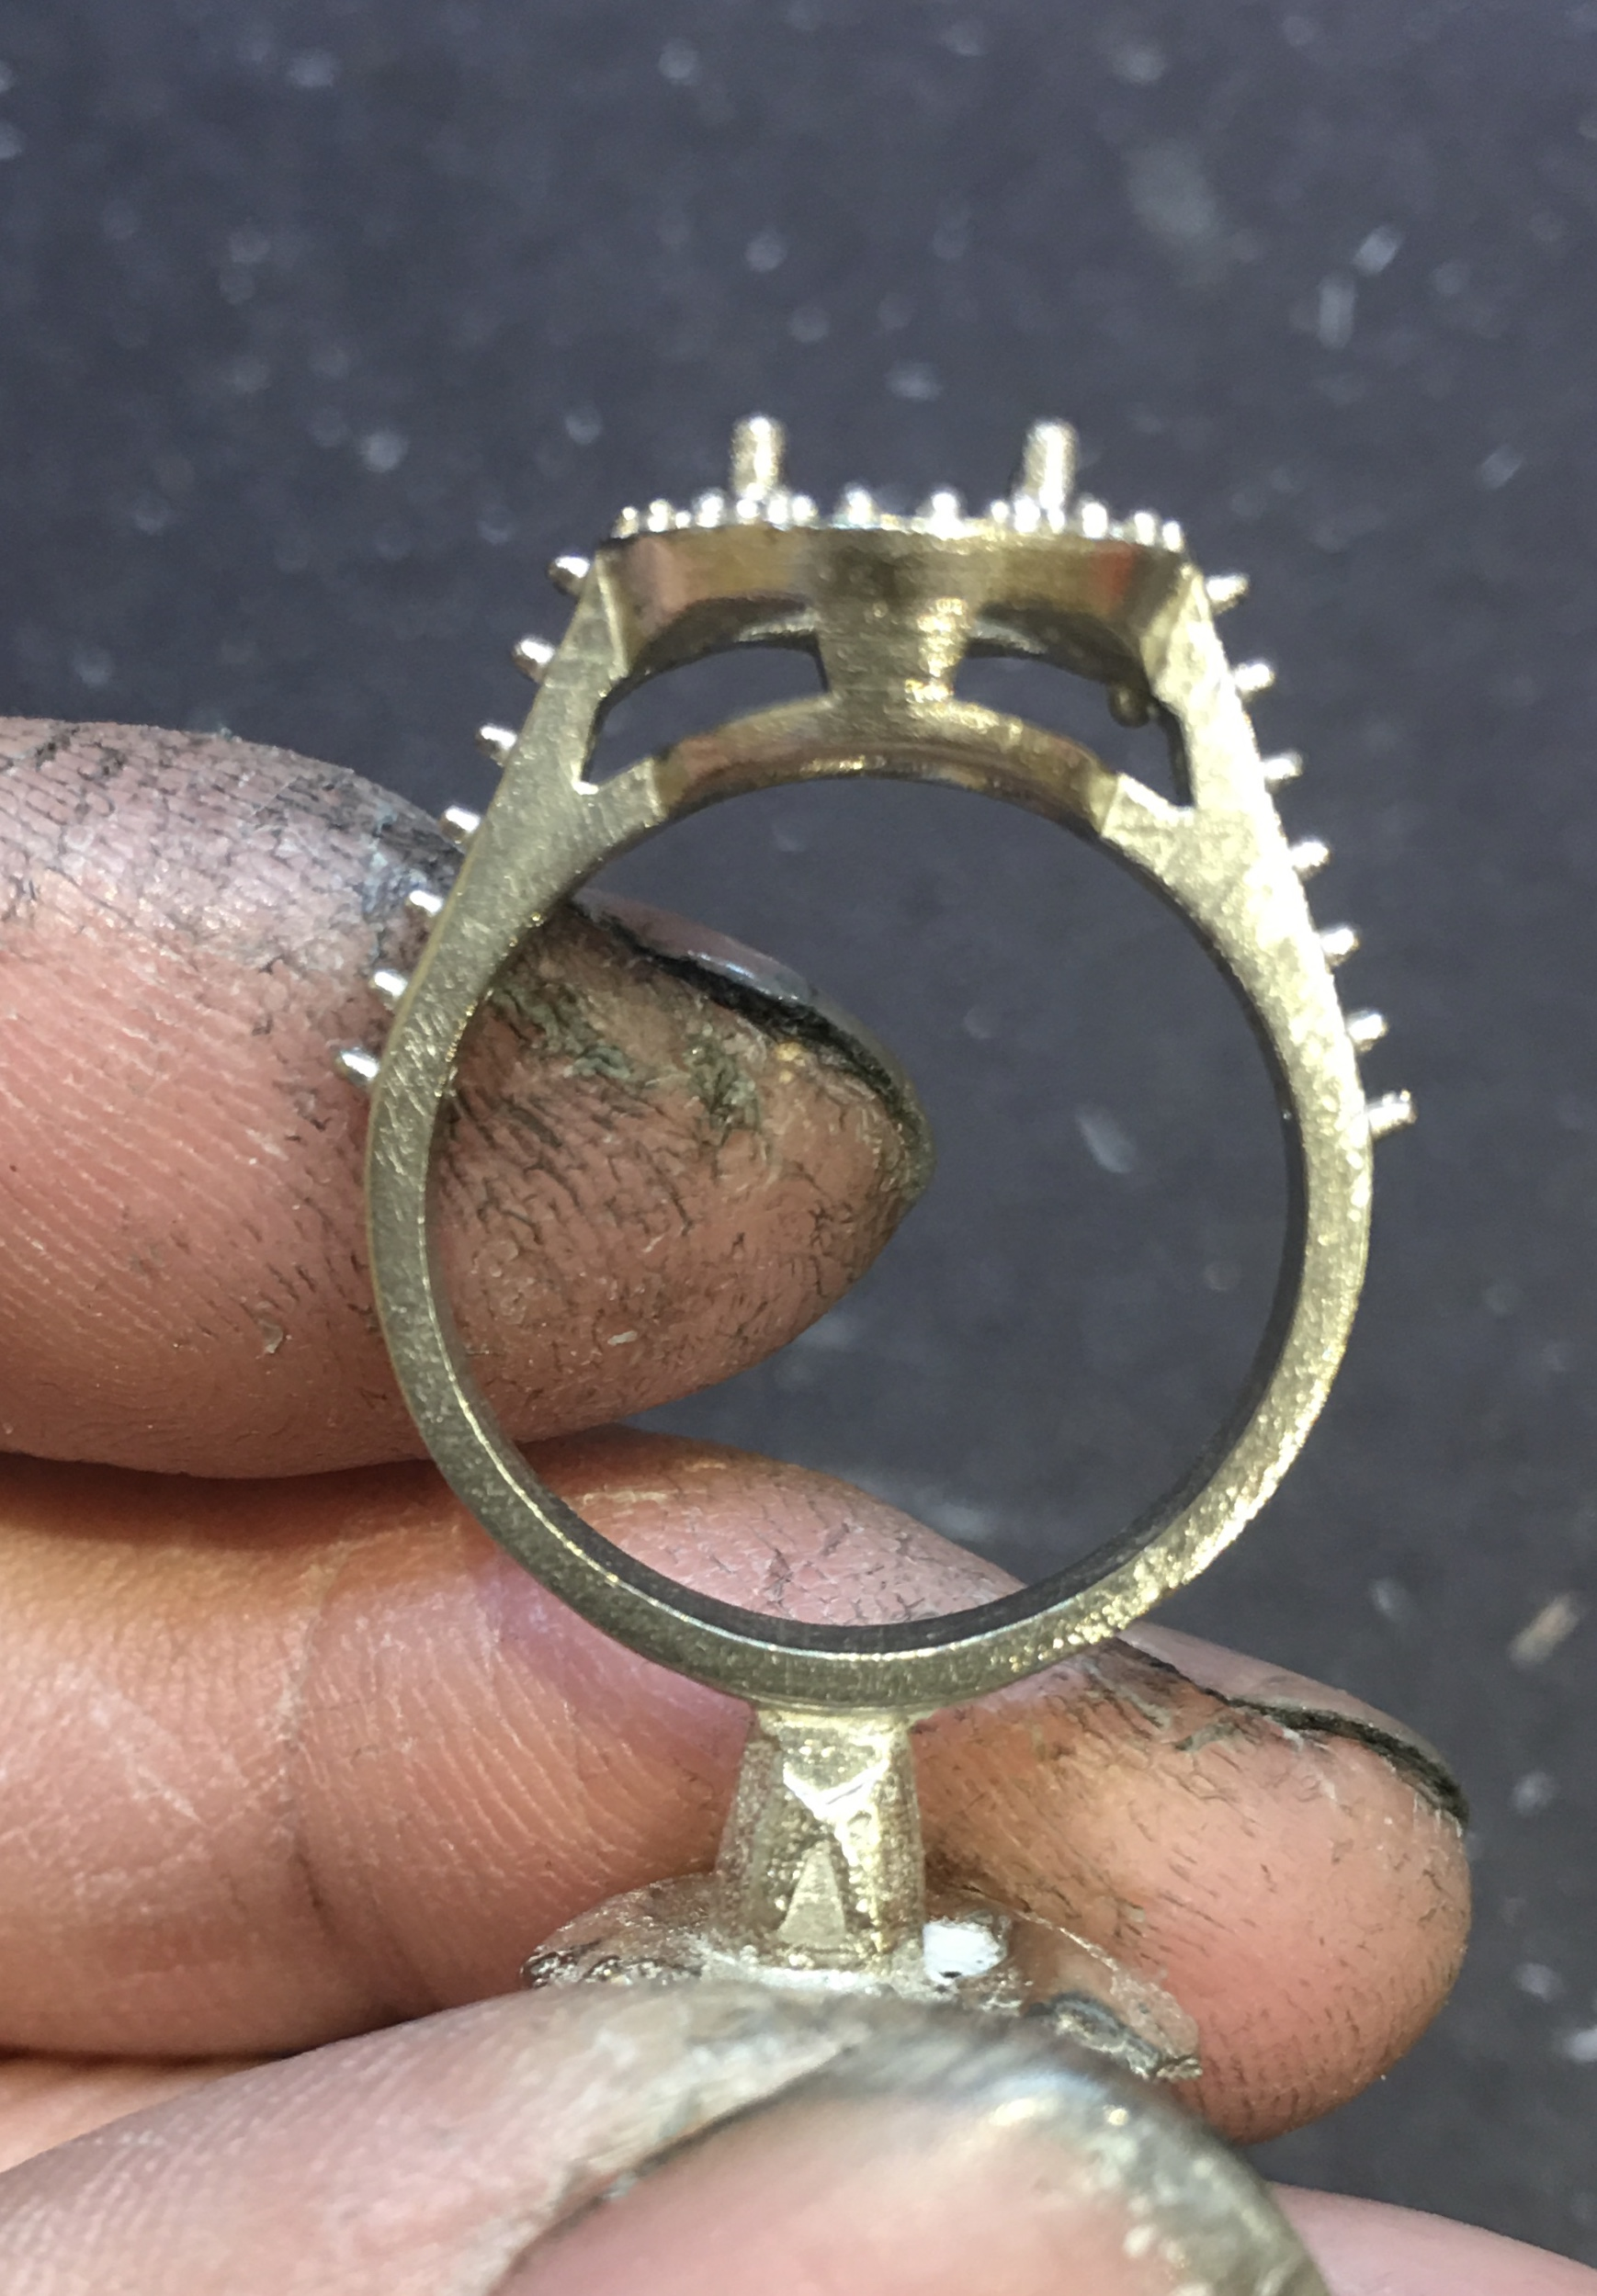 Casting a ring